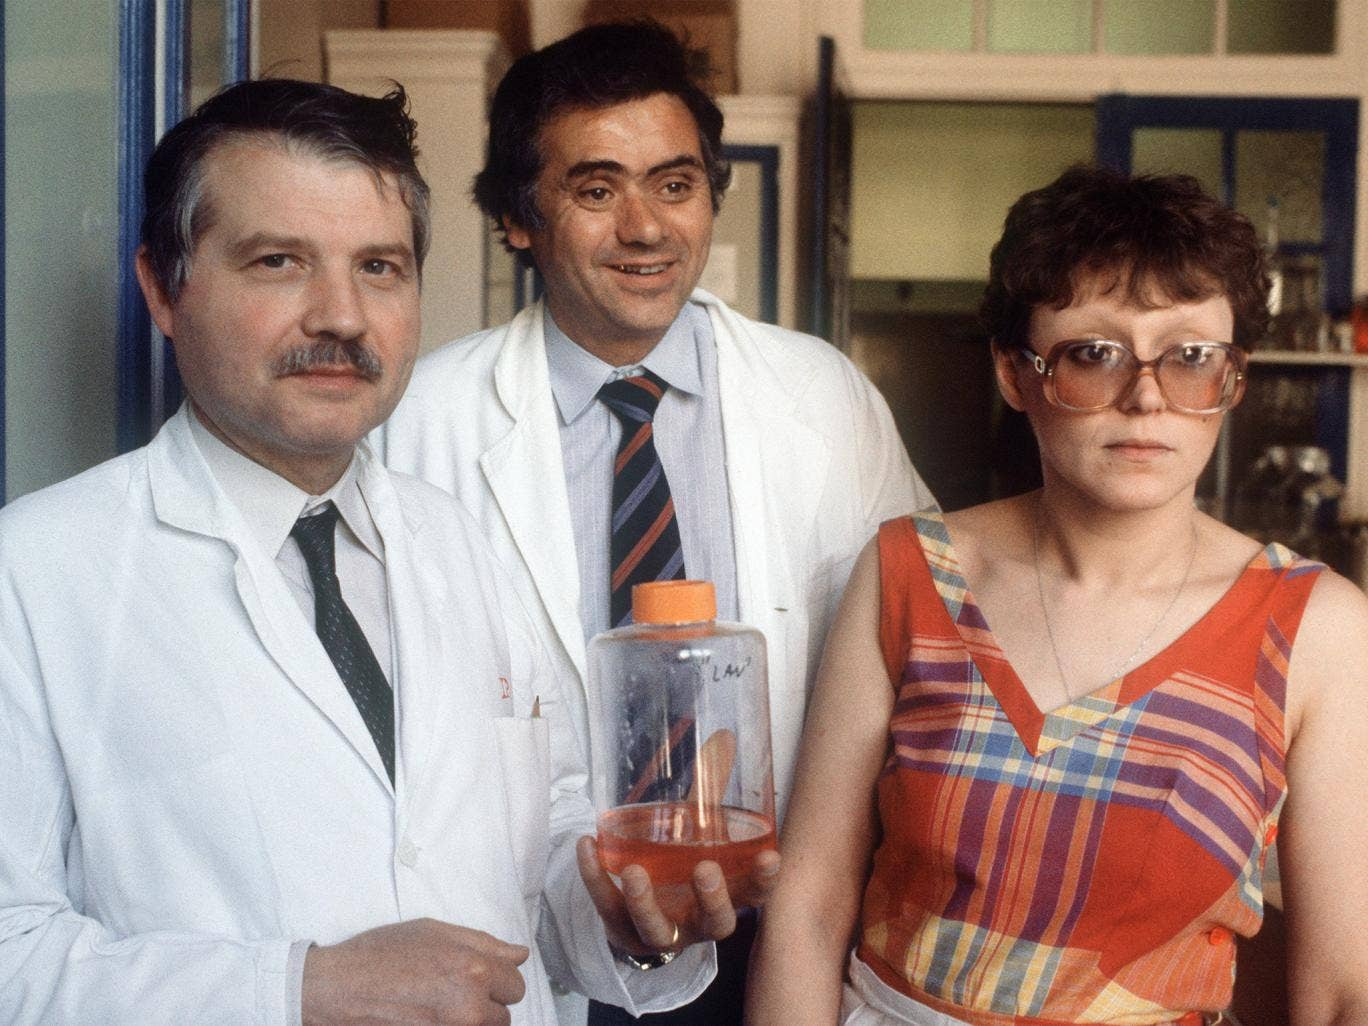 Virus hunters: Françoise Barré-Sinoussi with Luc Montagnier, left, and Jean-Claude Chermann at the Pasteur Institute in 1984